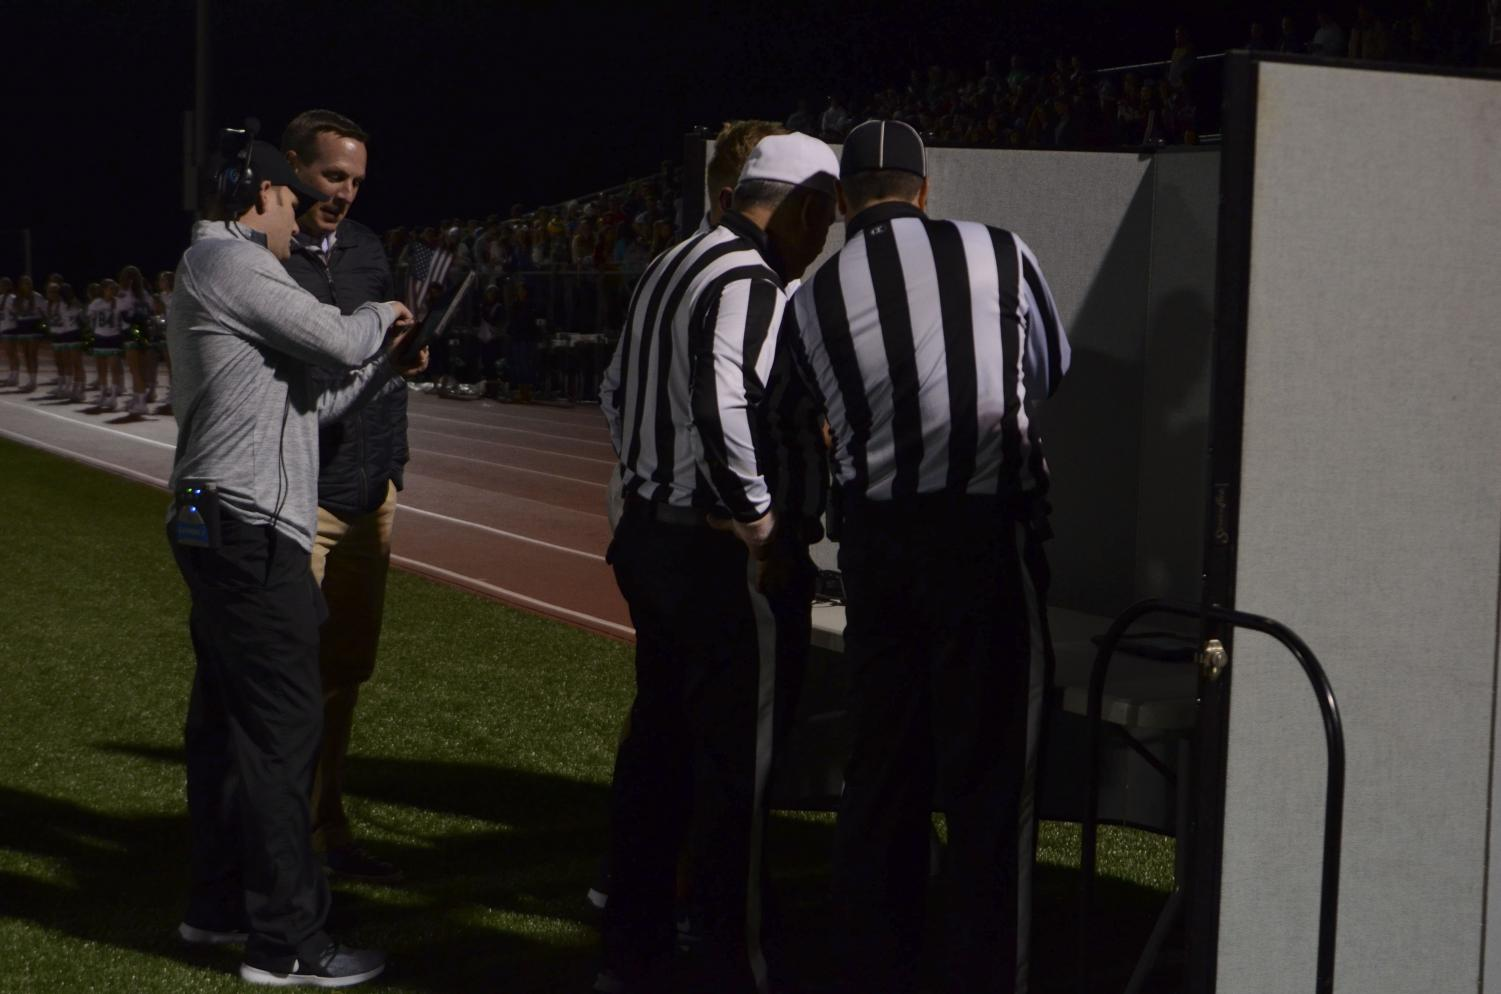 The referees review the play at the replay booth with PV assistant Coach JJ Moran, while defense coordinator Adam Preciado shows the play to Athletic Director Shawn Buchanan.